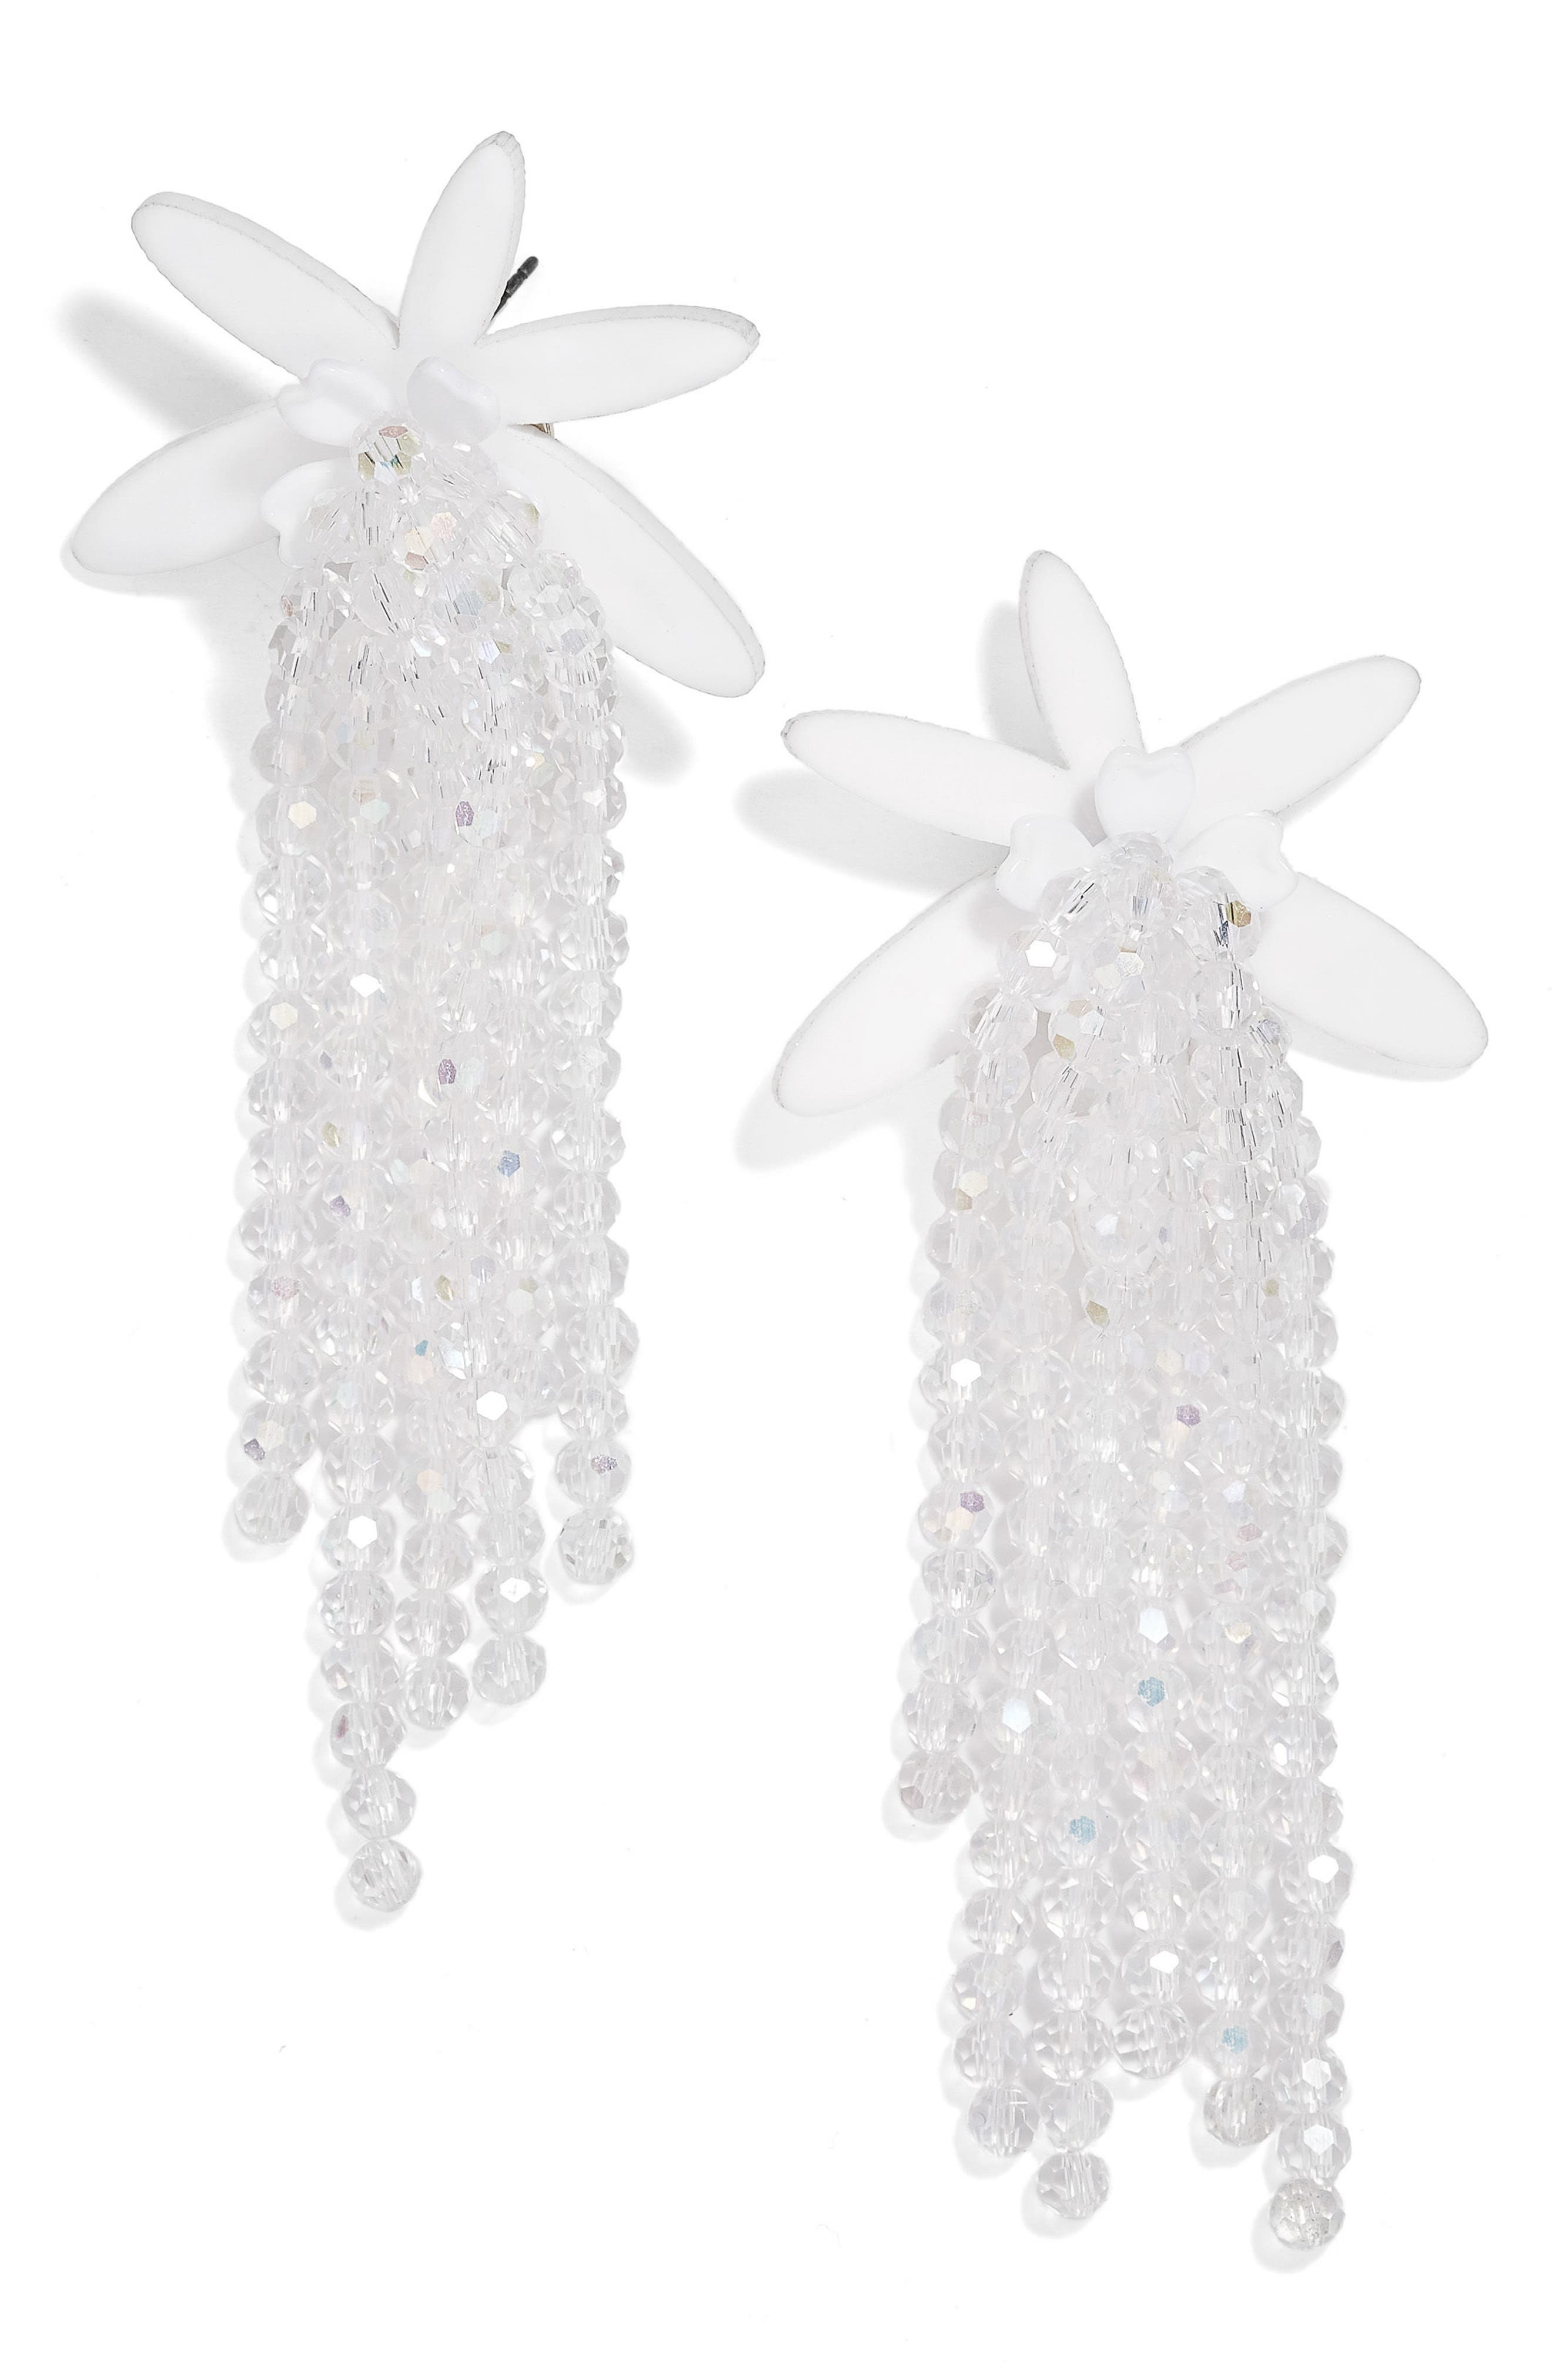 Lily Drop Earrings,                         Main,                         color, White/ Iridescent